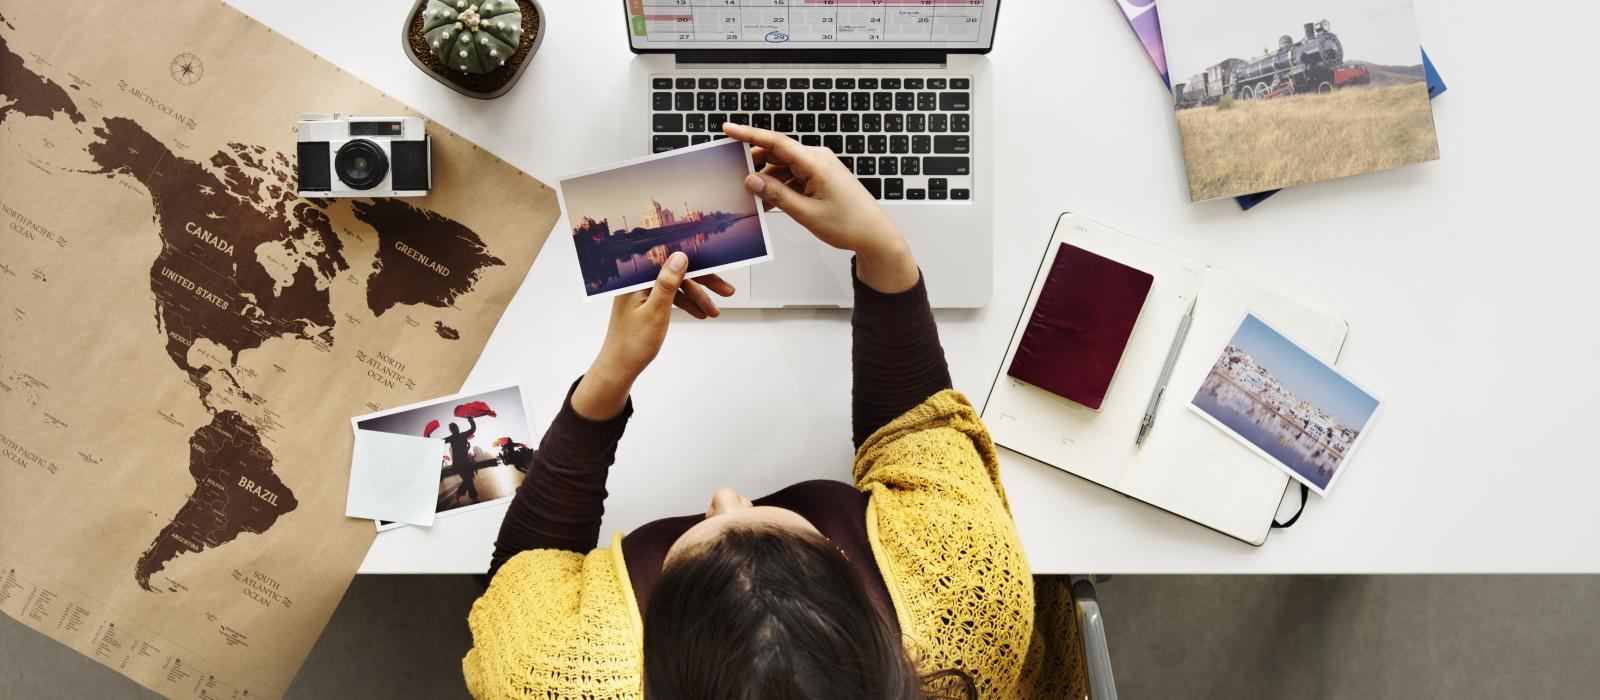 Why image tags are important for bloggers